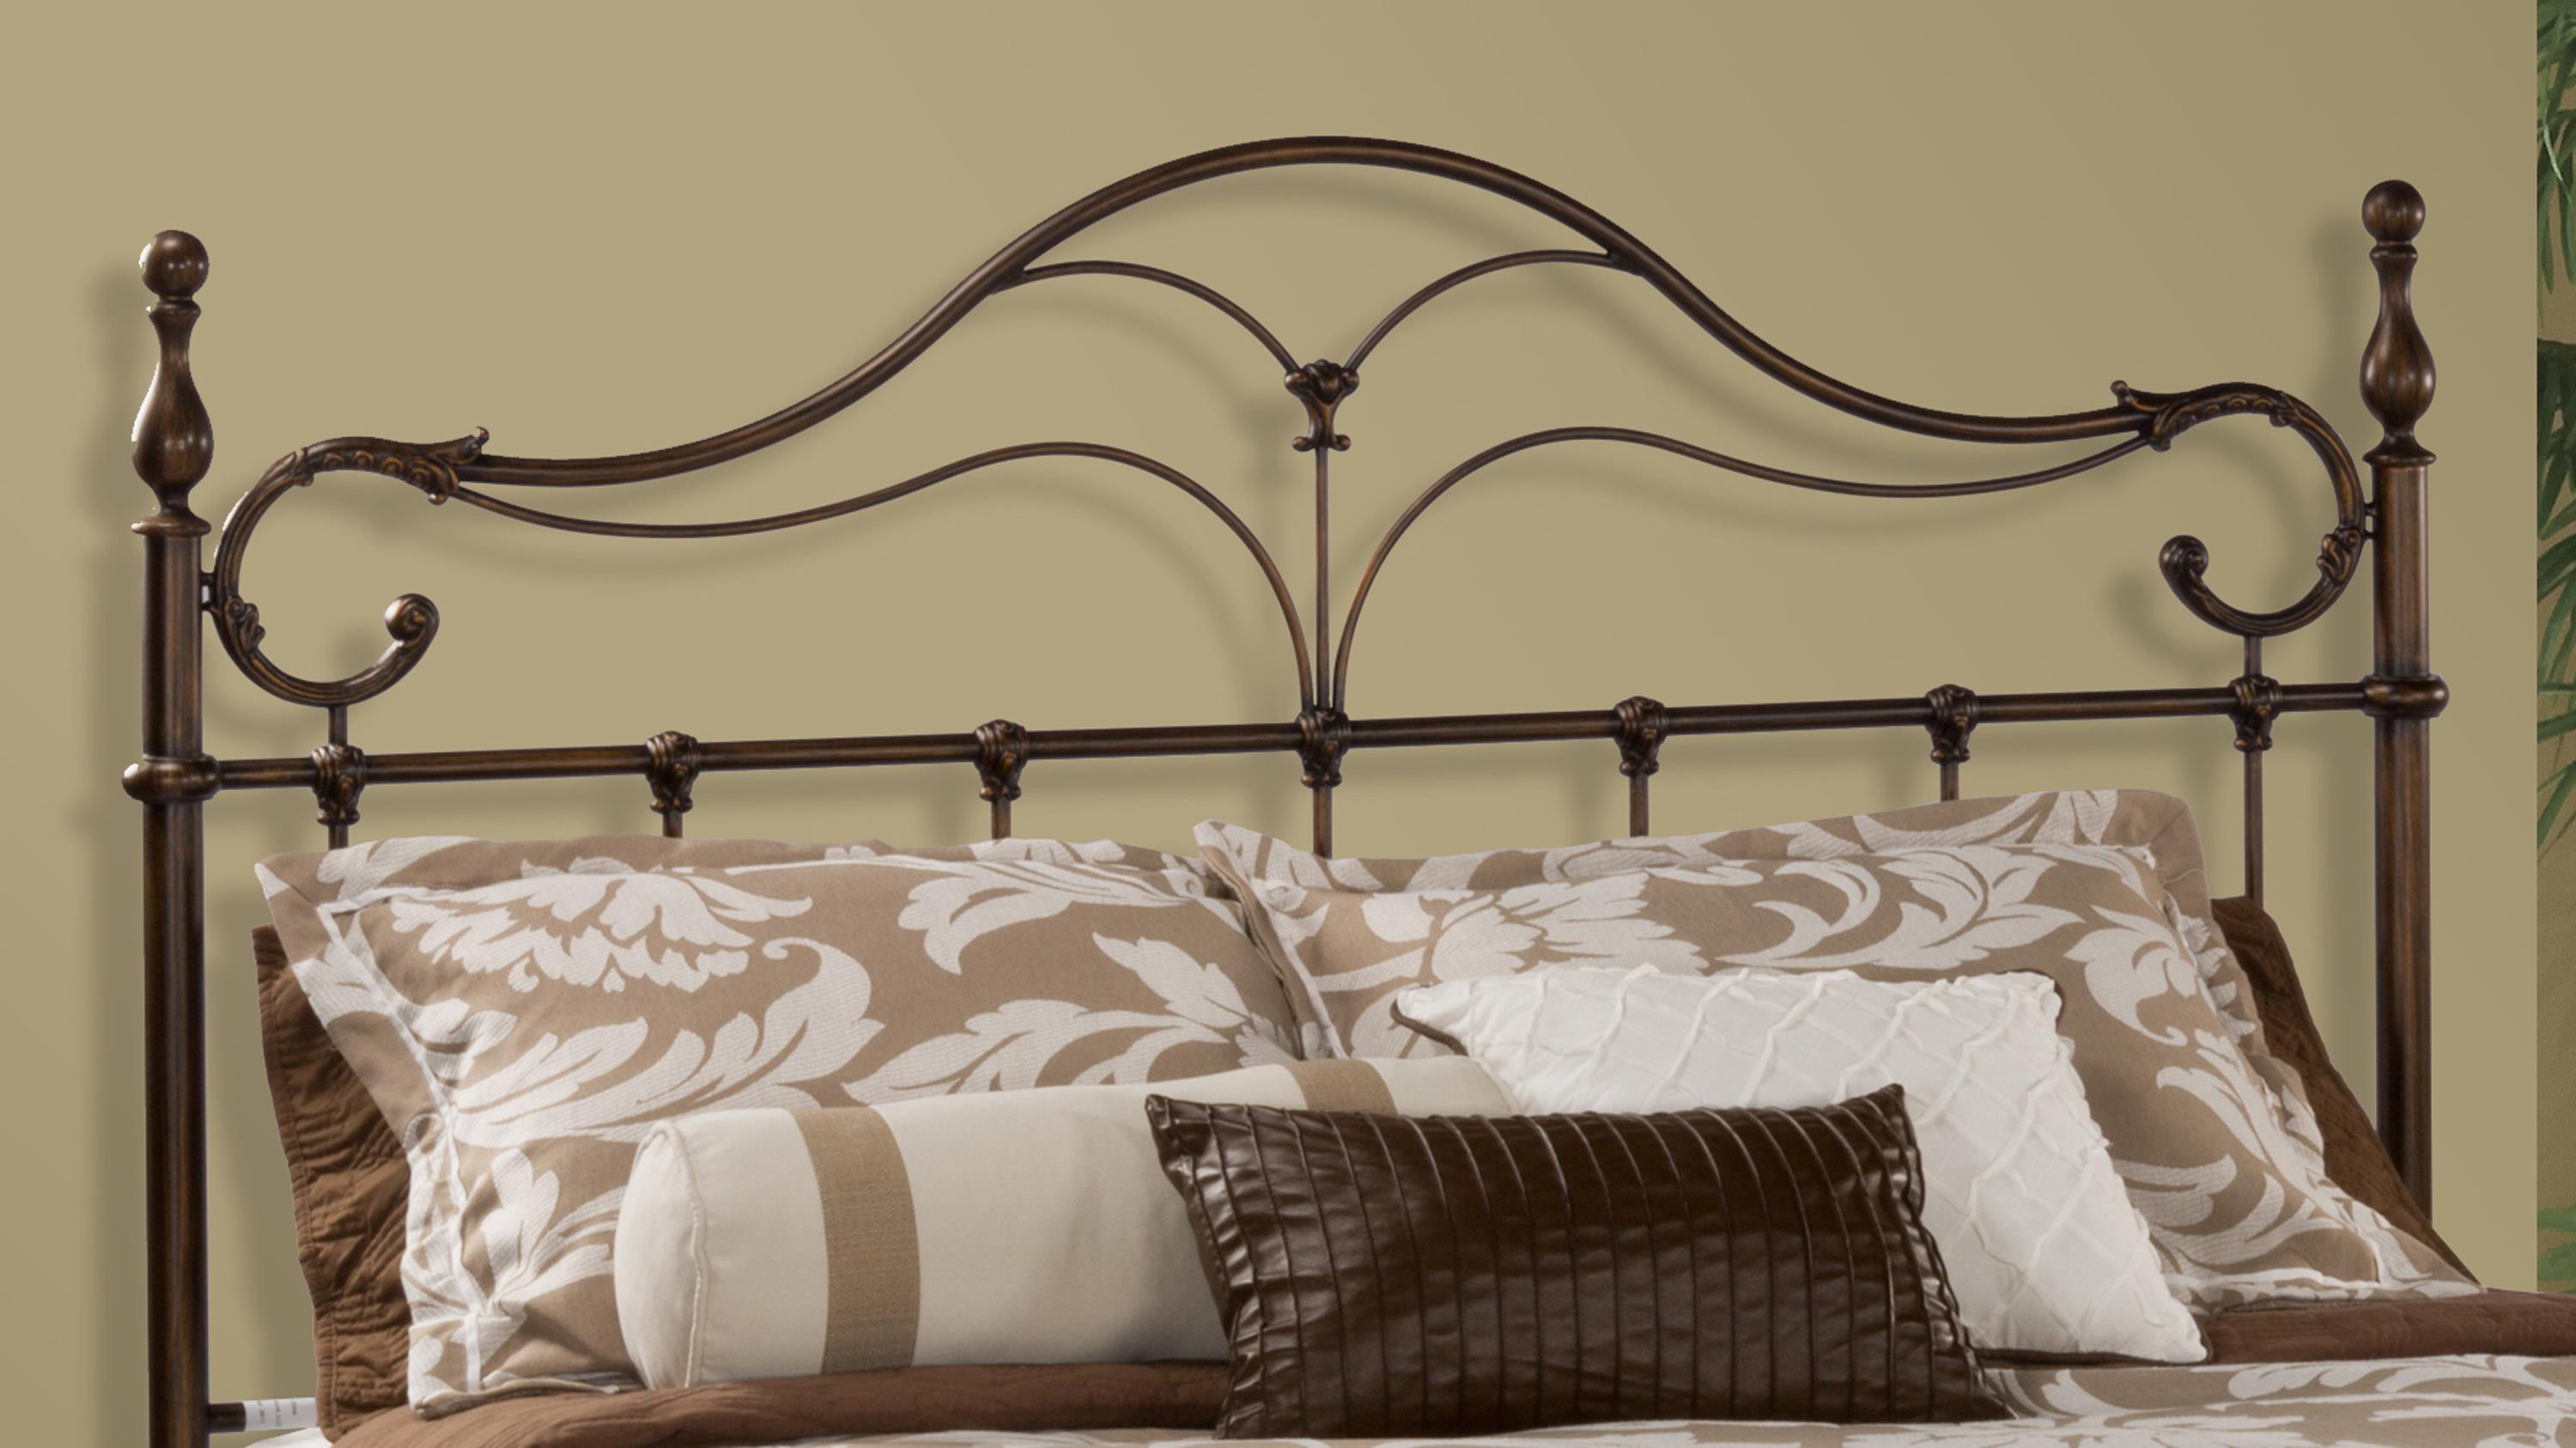 Hillsdale Metal Beds Bennett Full/Queen Headboard - Item Number: 1249-490